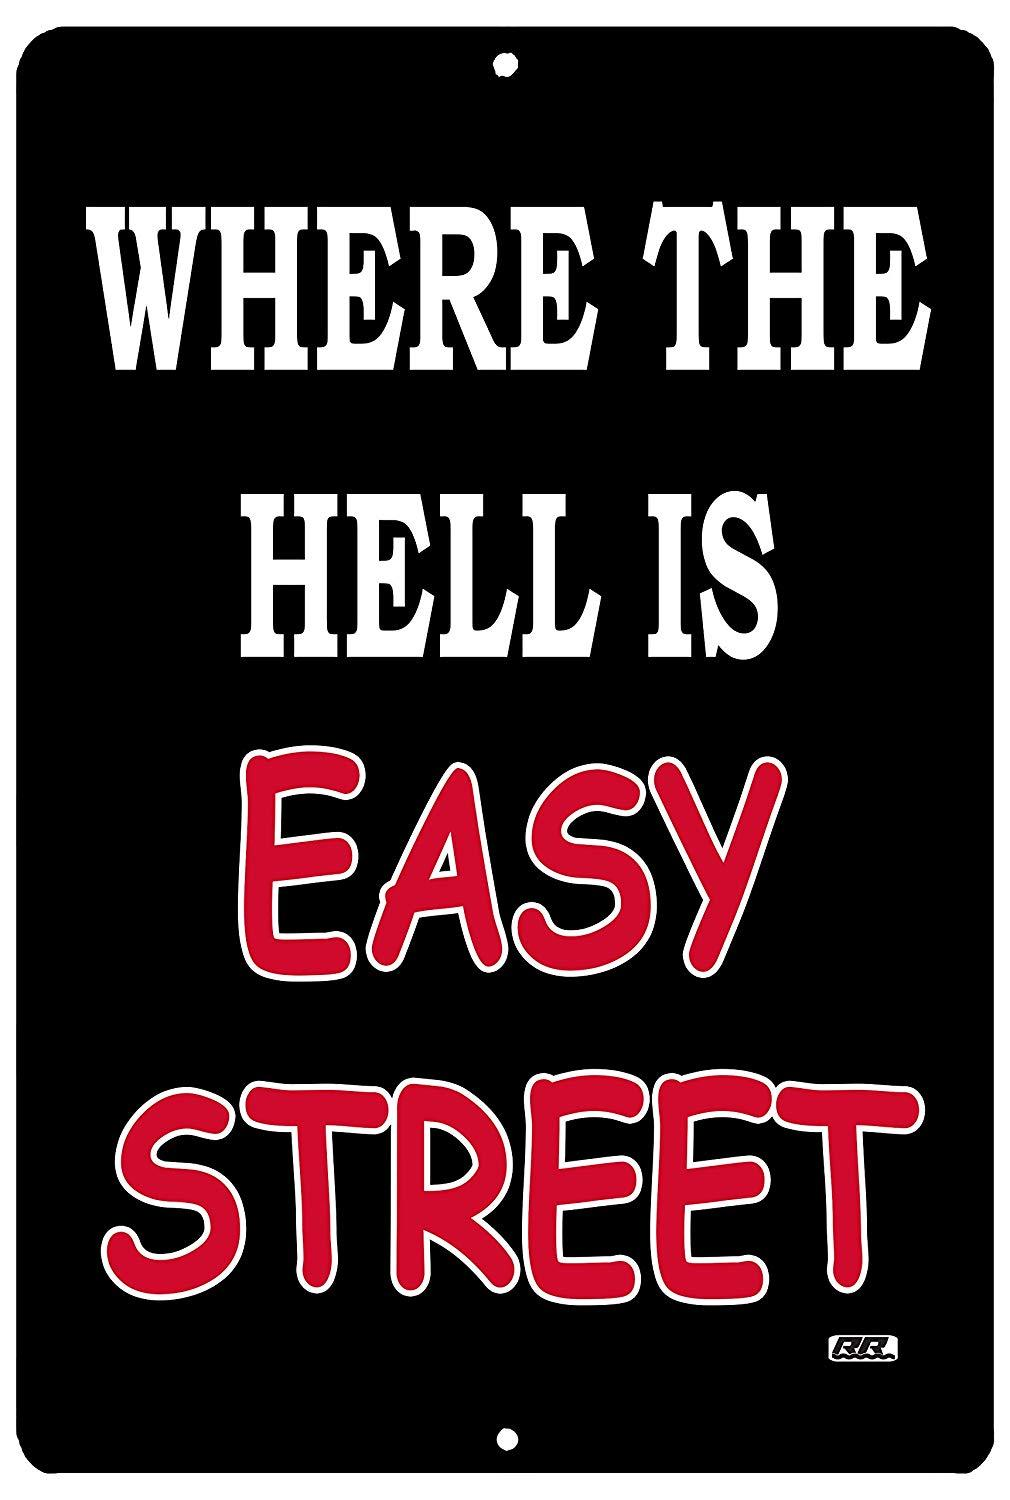 Funny Sarcastic Work Office Retail Metal Tin Sign Wall Decor Bar Boss Employee Coworker Where is Easy Street - Funny Signs - Rogue River Tactical  - Rogue River Tactical